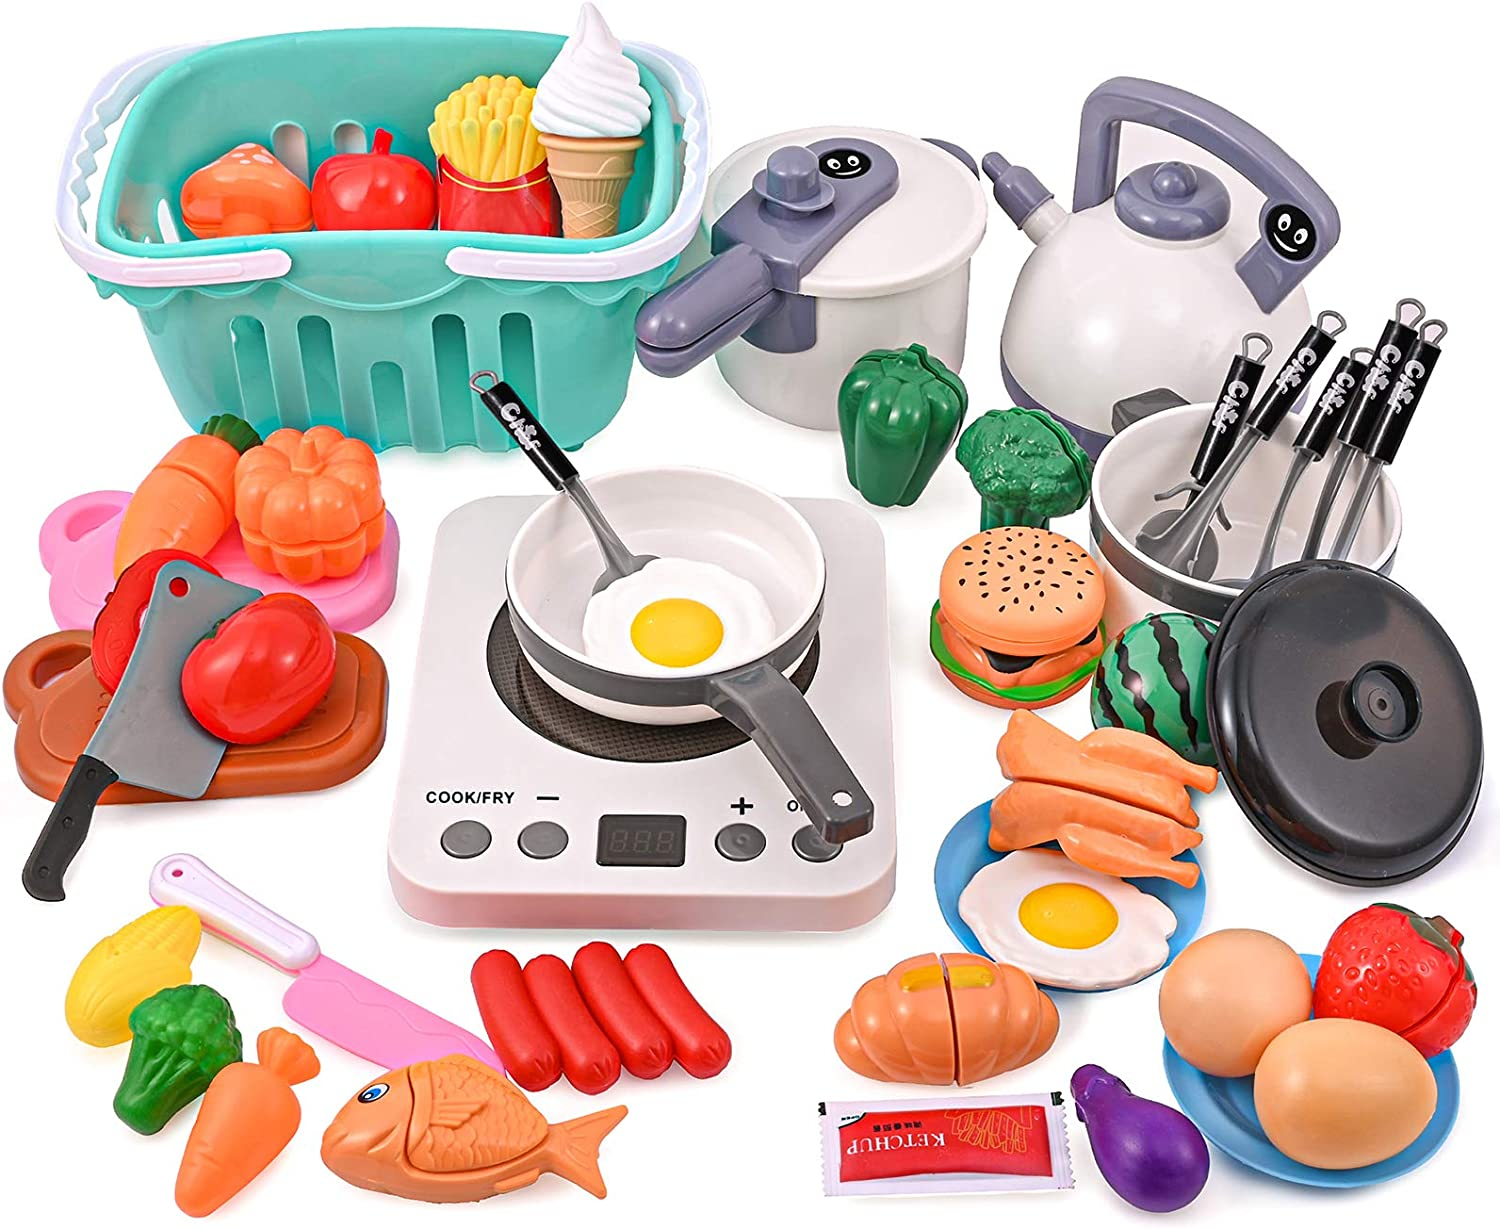 PRAABDC Kids Pretend Play Kitchen Accessories Set Toys -46 Pcs Kids Kitchen Toys Set for Kids with Electronic Induction Cooktop,Pressure Pot,Cooking Utensils,Toy Cutlery,Cut Play Food,Shopping Basket